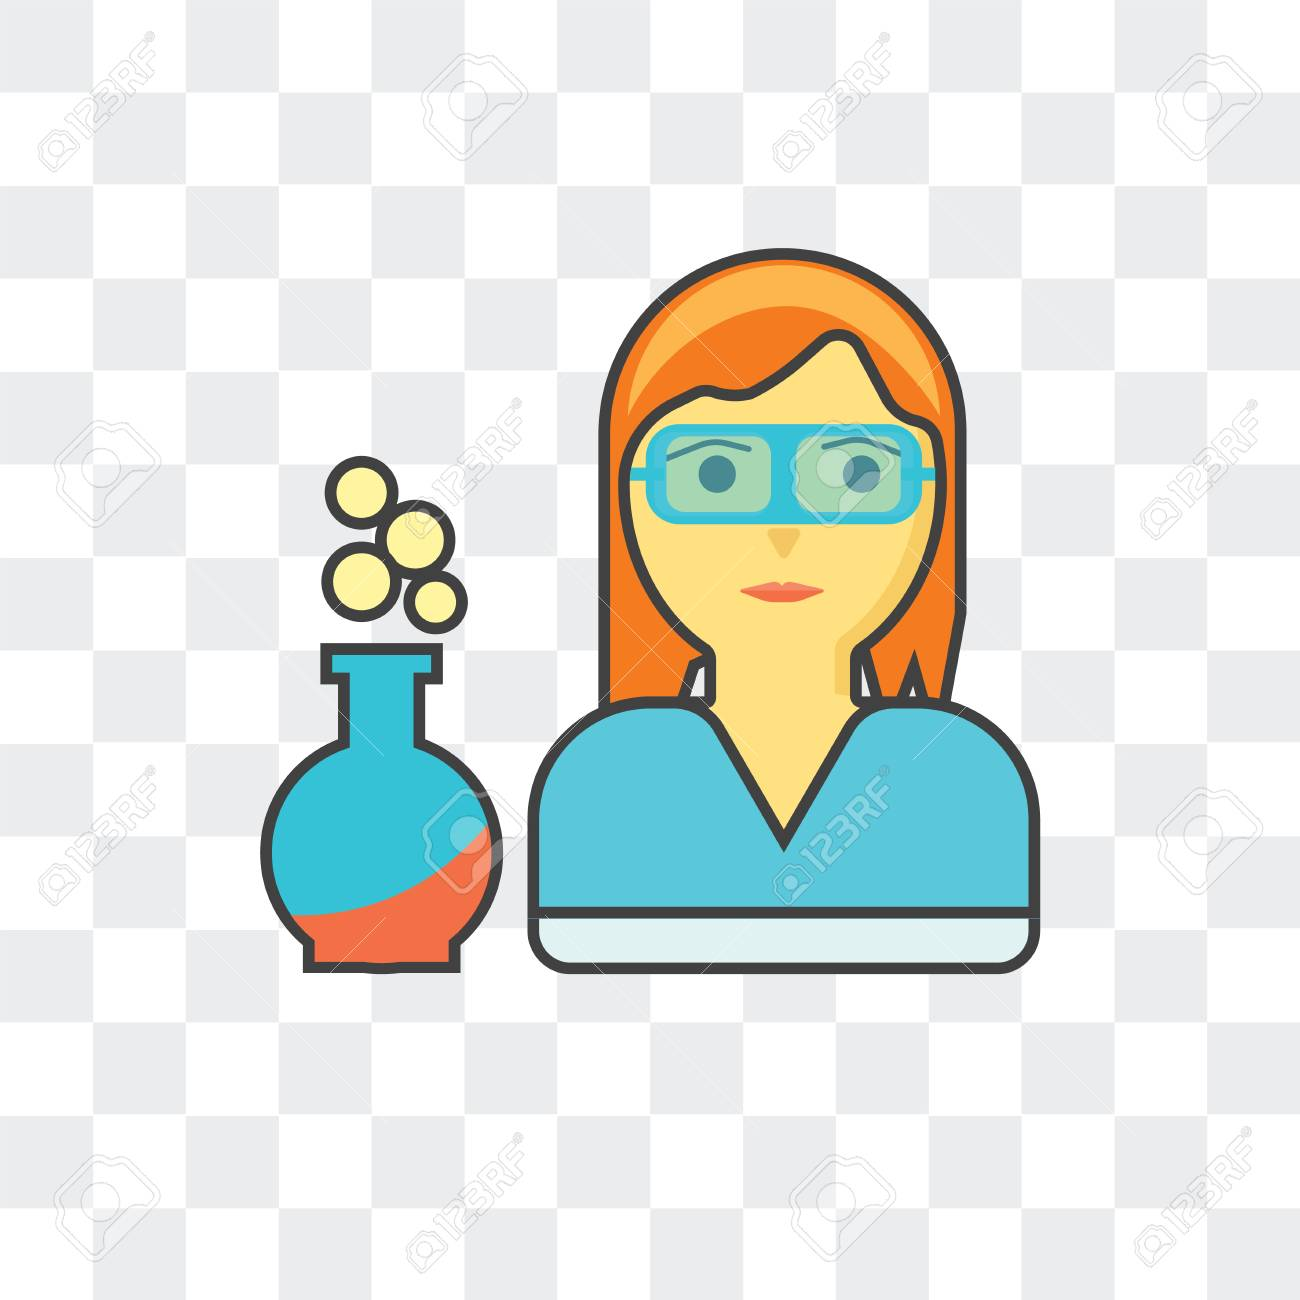 scientist vector icon isolated on transparent background scientist royalty free cliparts vectors and stock illustration image 107223316 scientist vector icon isolated on transparent background scientist